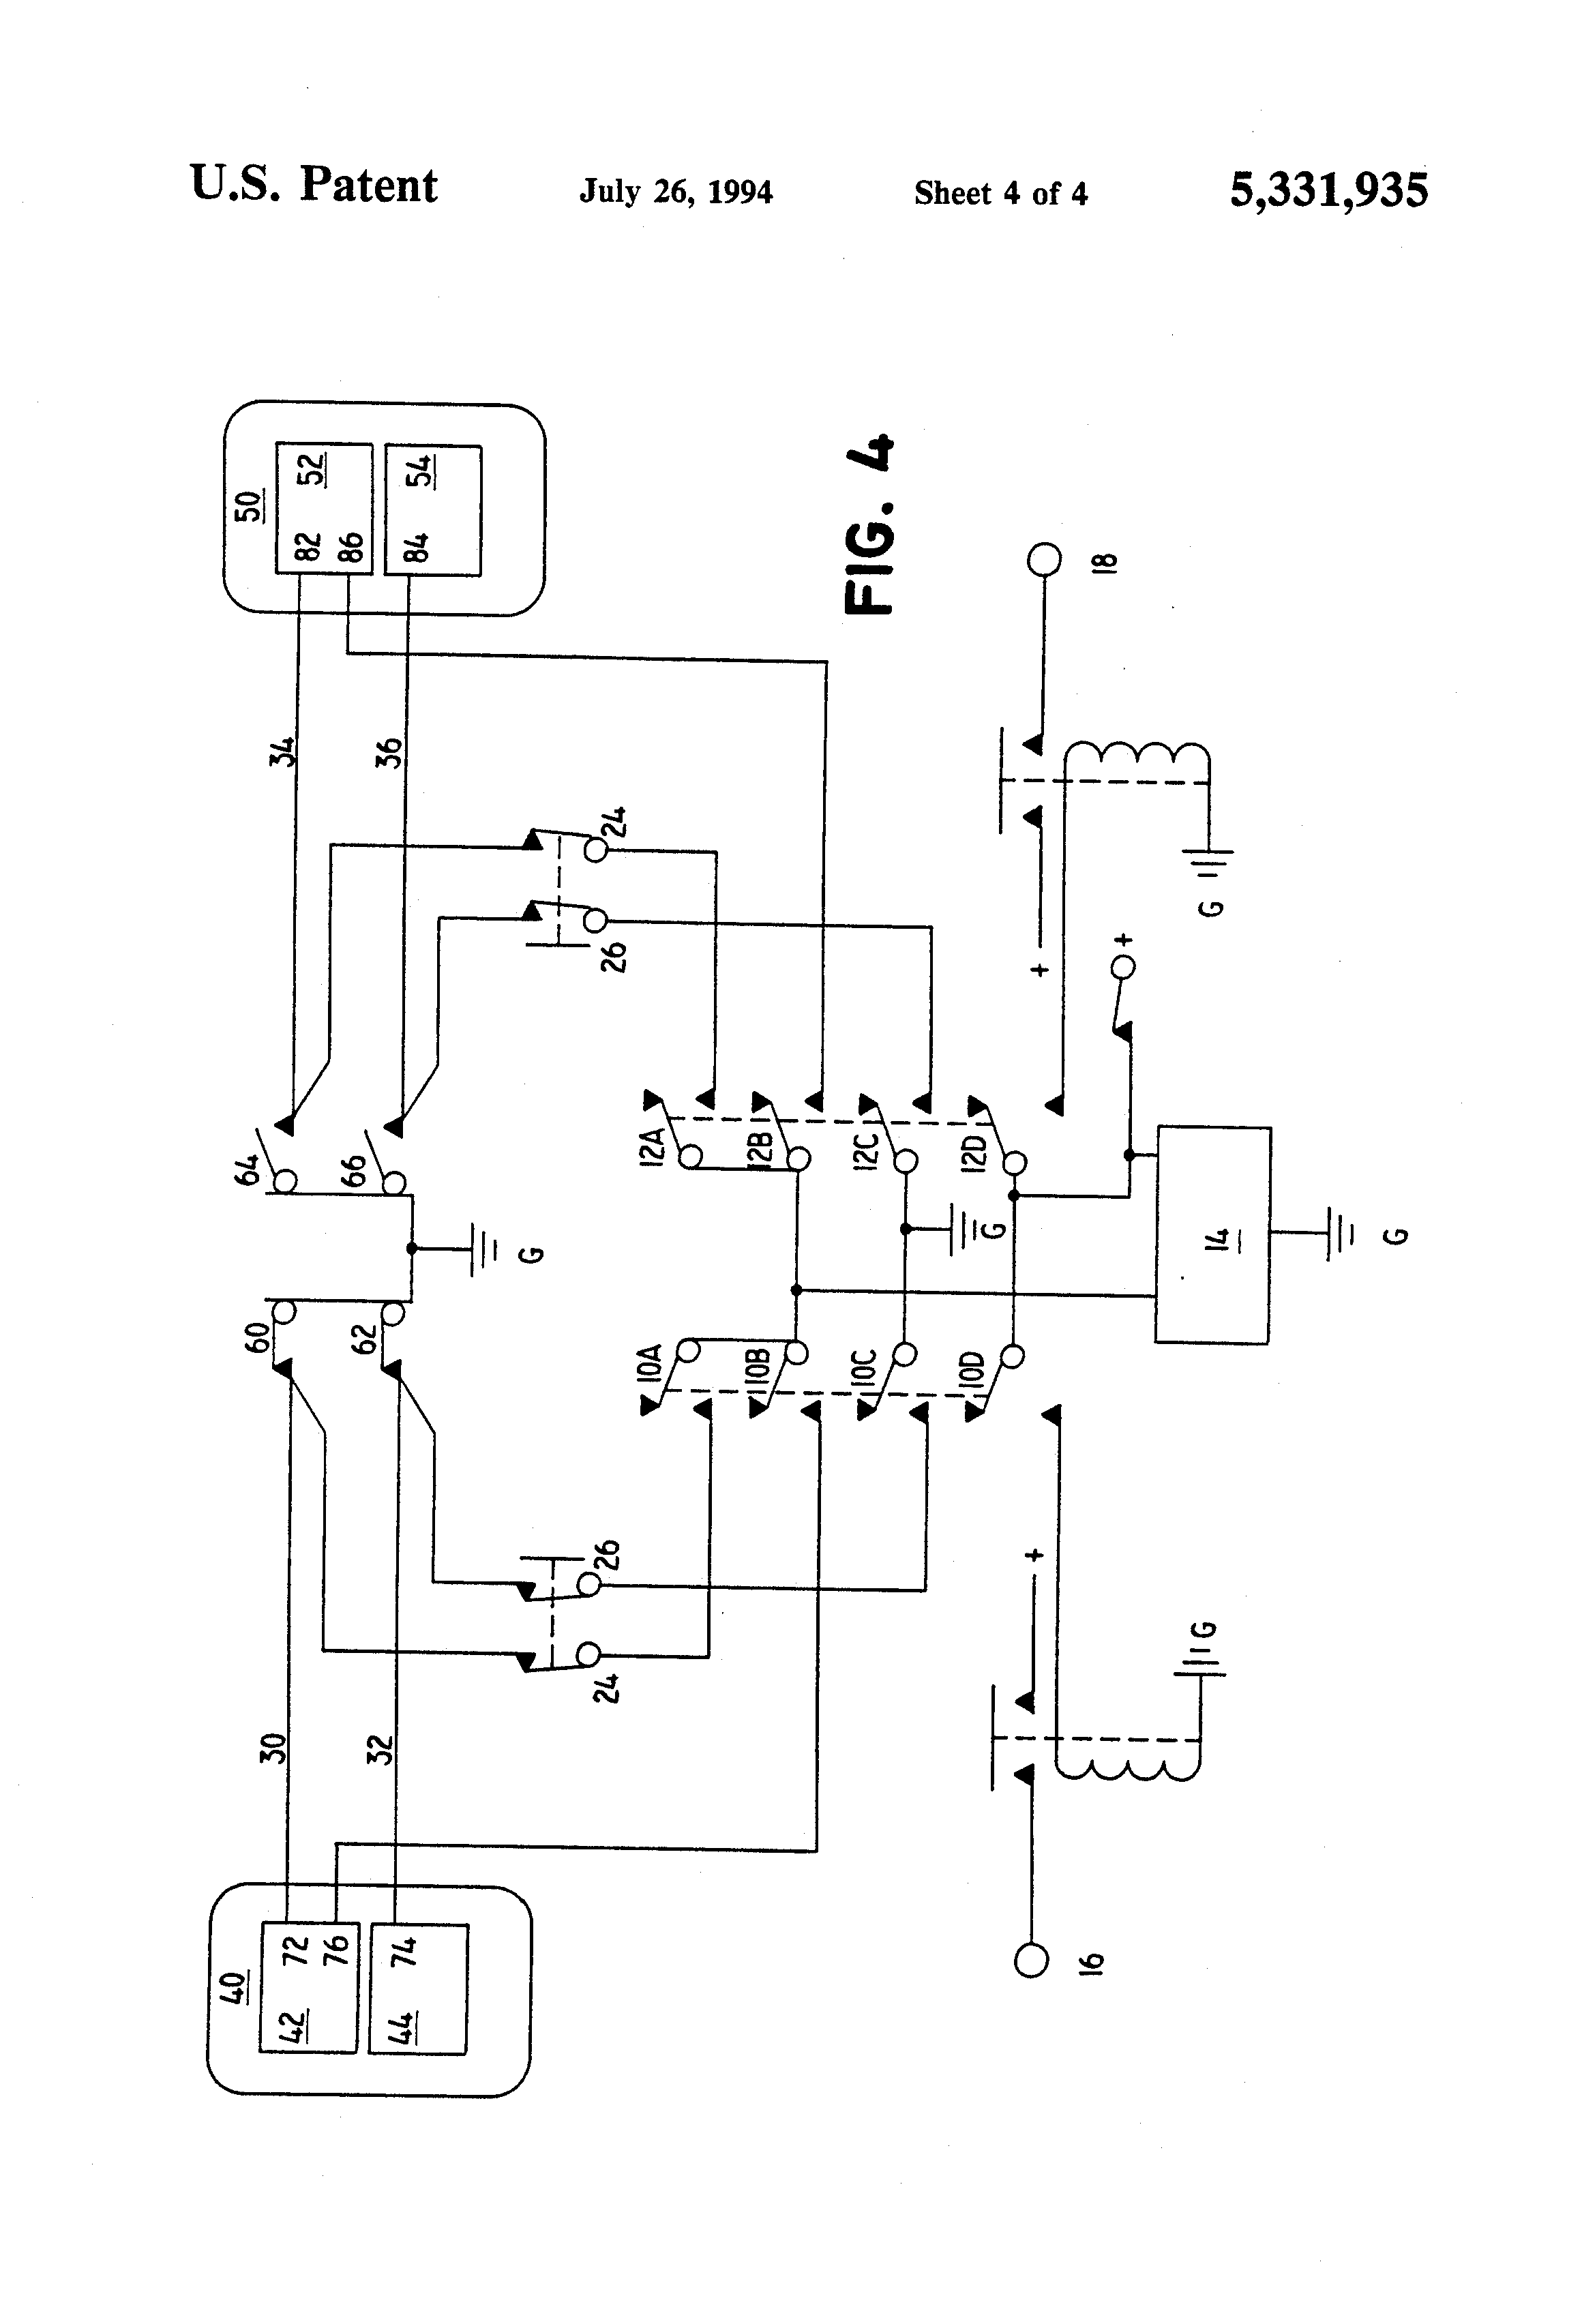 [SCHEMATICS_44OR]  DIAGRAM] Pioneer Deh P3300 Wiring Diagram FULL Version HD Quality Wiring  Diagram - ALTOCART.K-DANSE.FR | Pioneer Deh P3300 Wiring Diagram |  | K-danse.fr